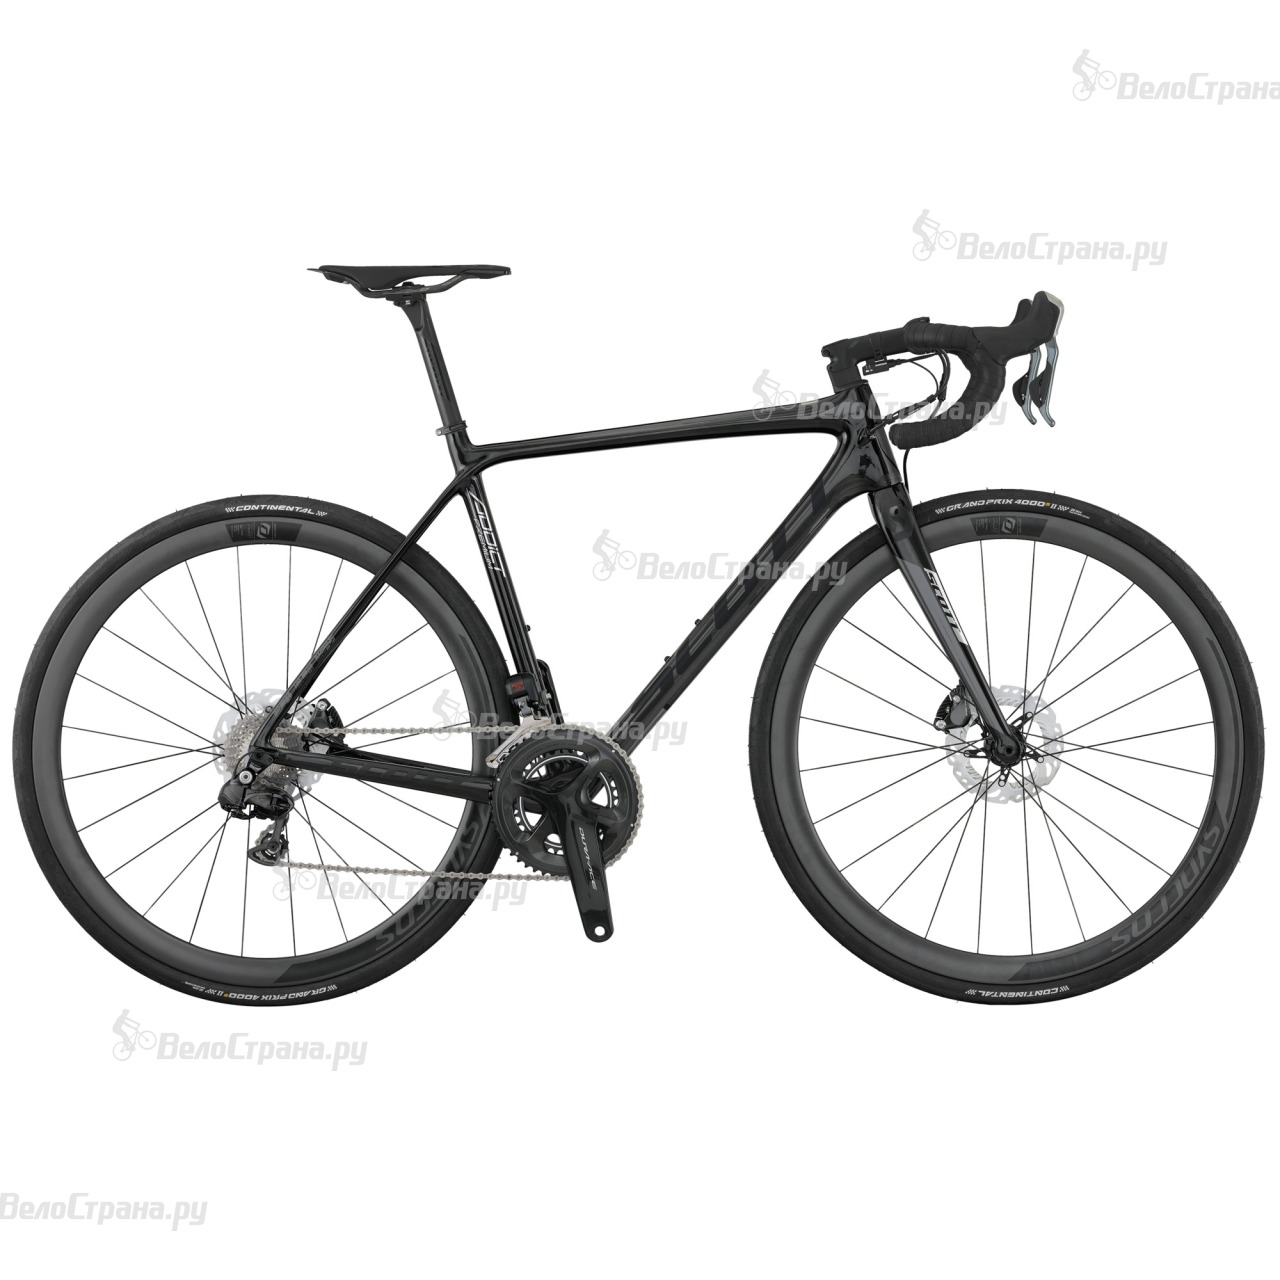 Велосипед Scott Addict Premium Disc Di2 (2017)